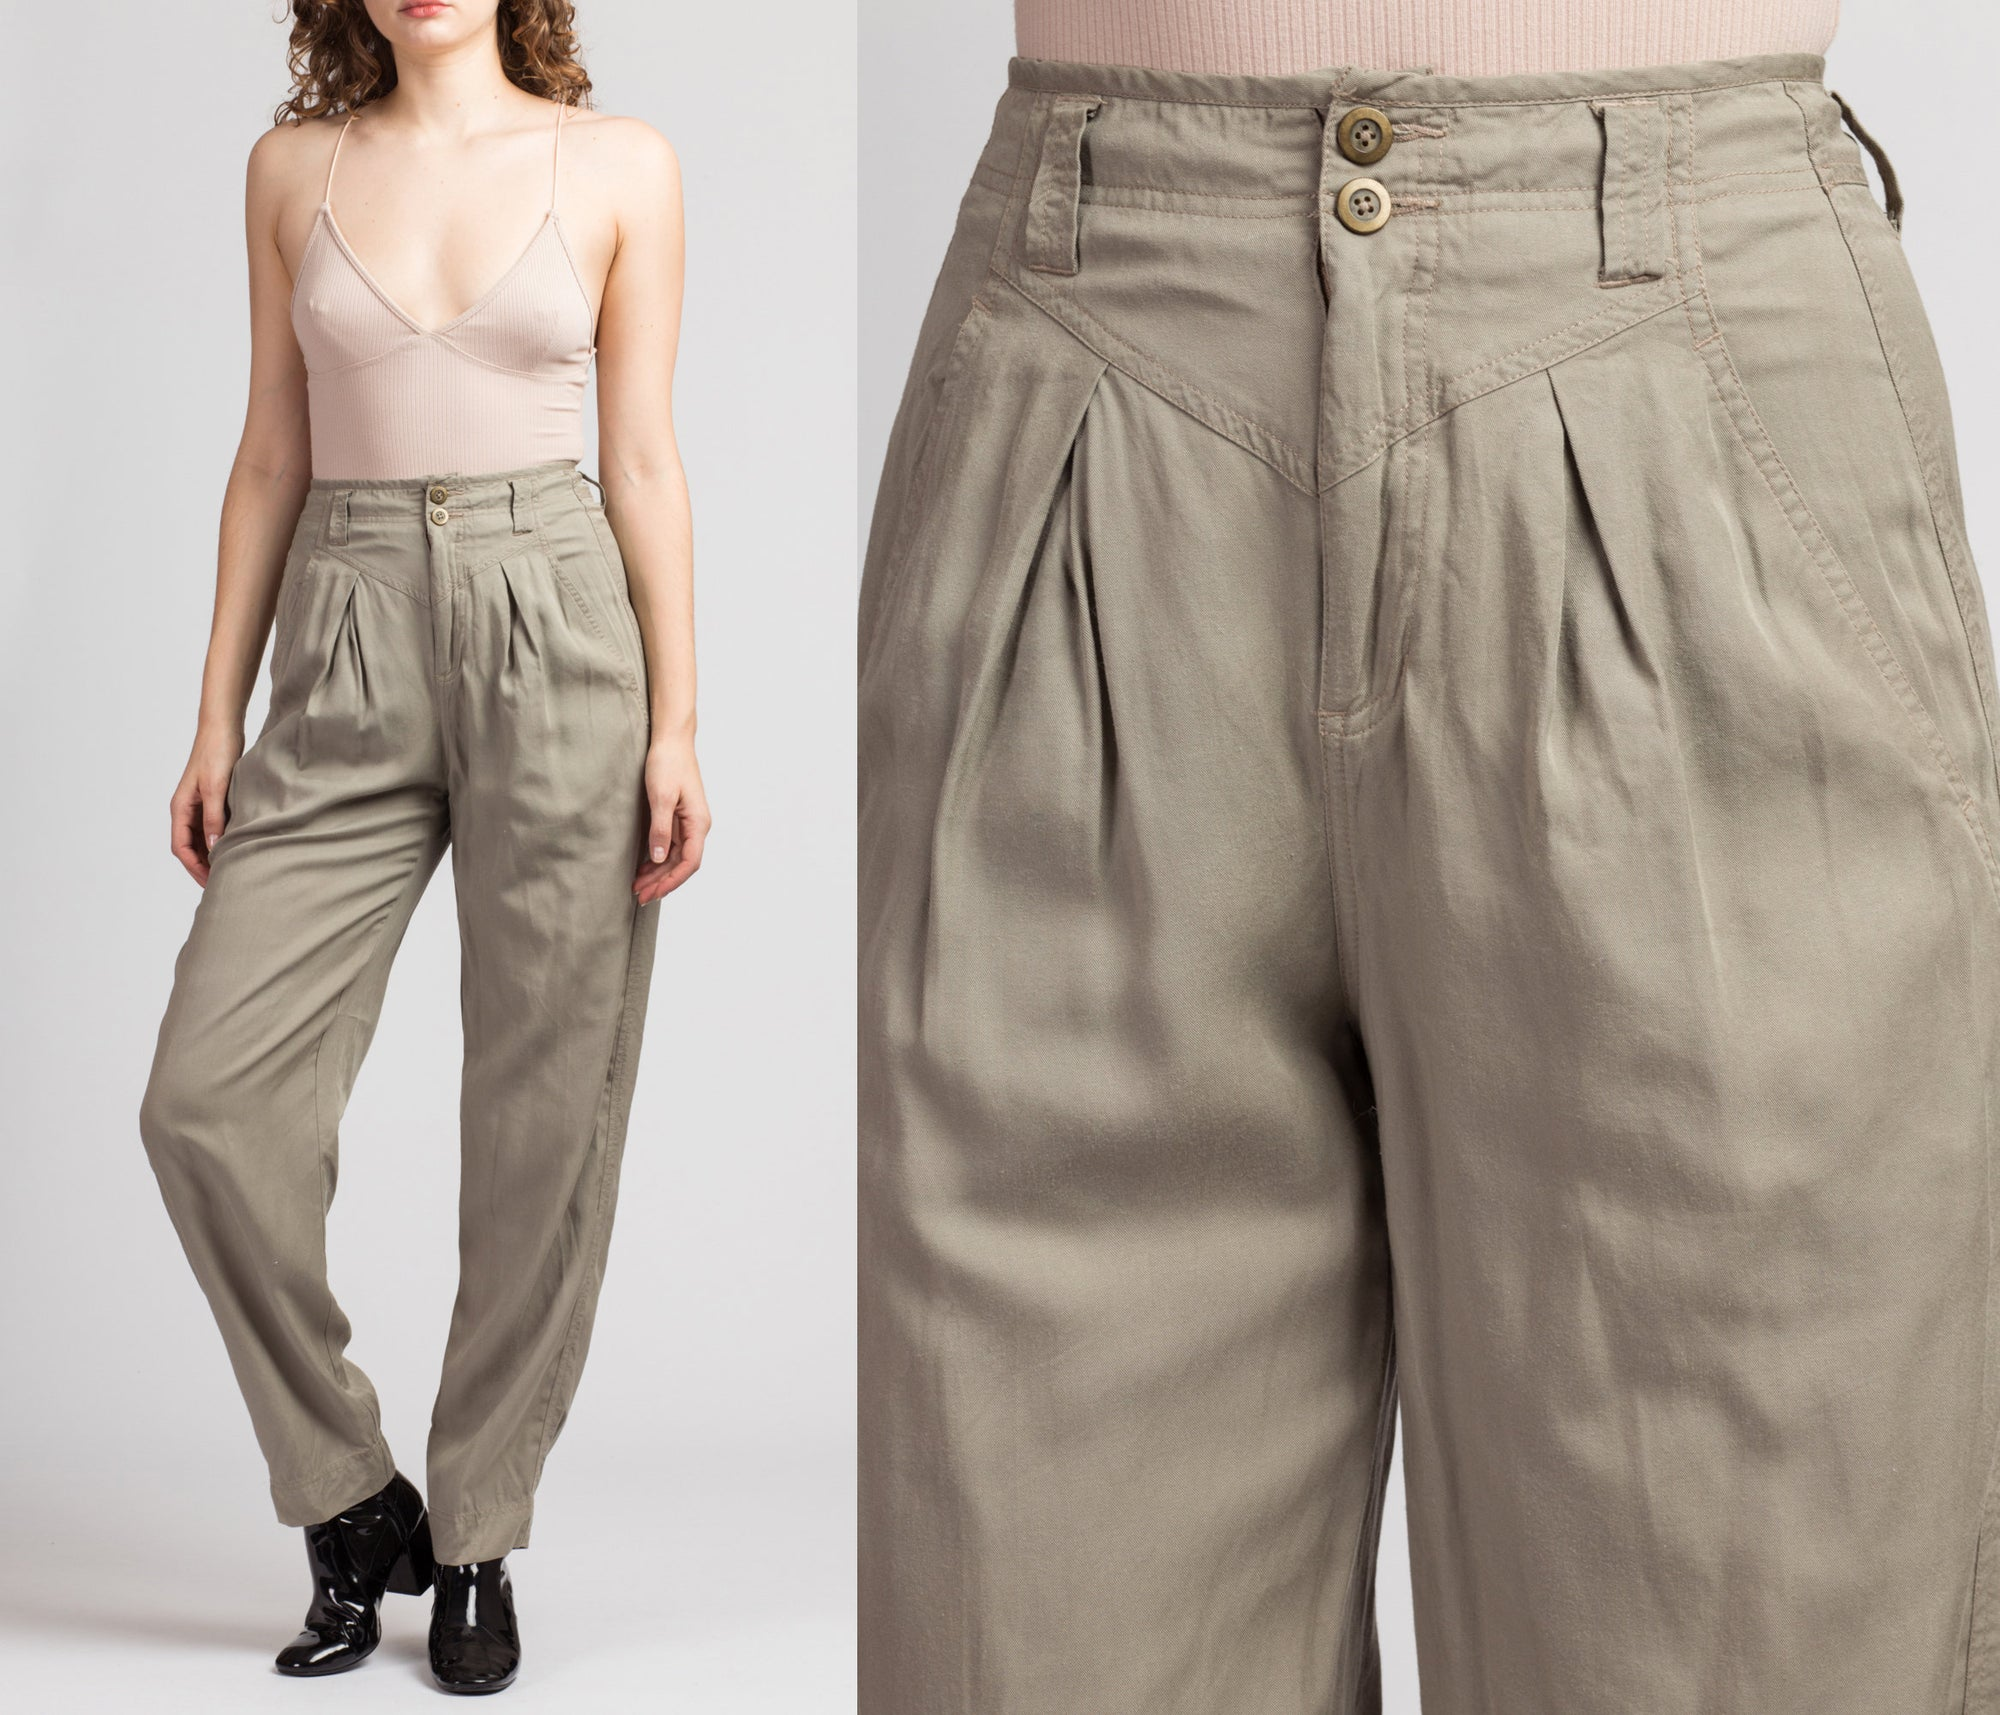 80s 90s Minimalist High Waist Pleated Trousers - Small, 26""